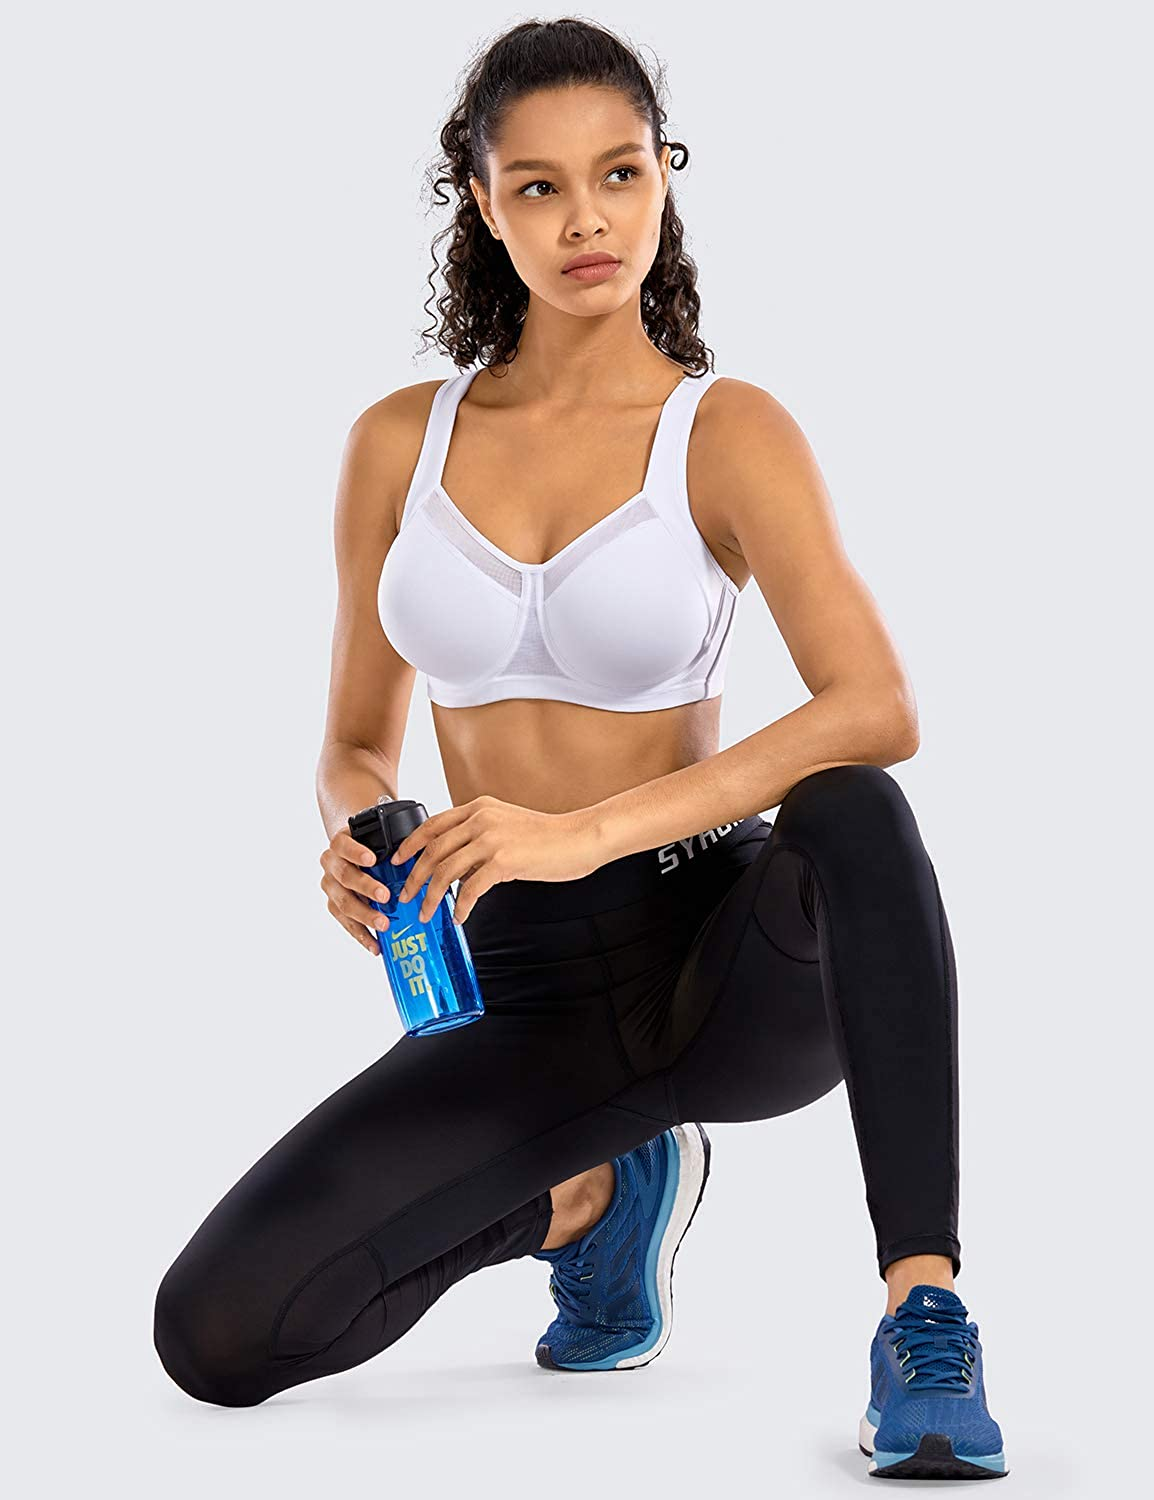 SYROKAN Women's High Impact Workout Running Powerback Support Underwire Sports Bra at  Women's Clothing store